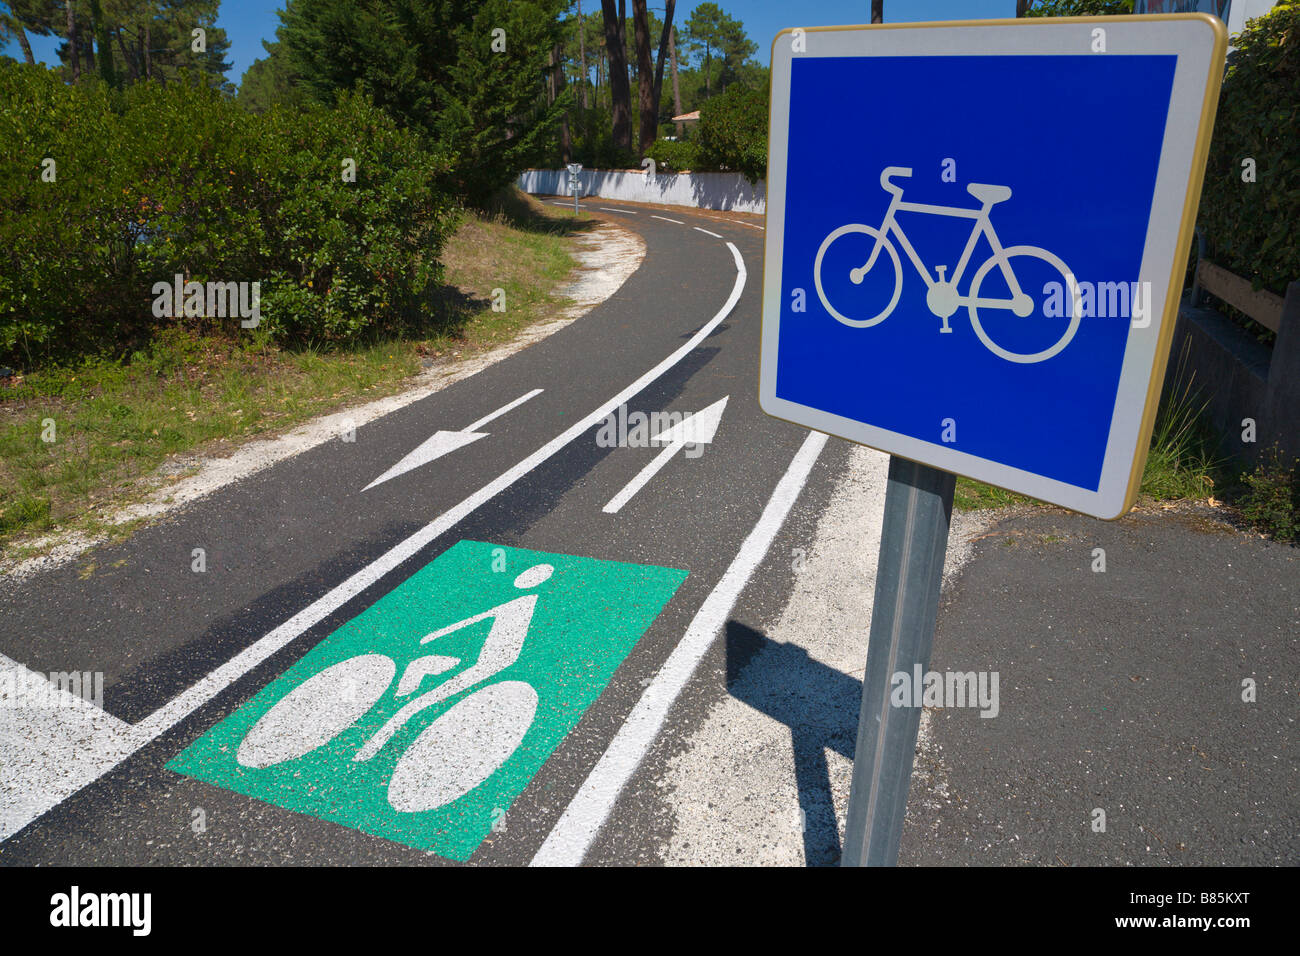 Cycle path, Gironde, France - Stock Image